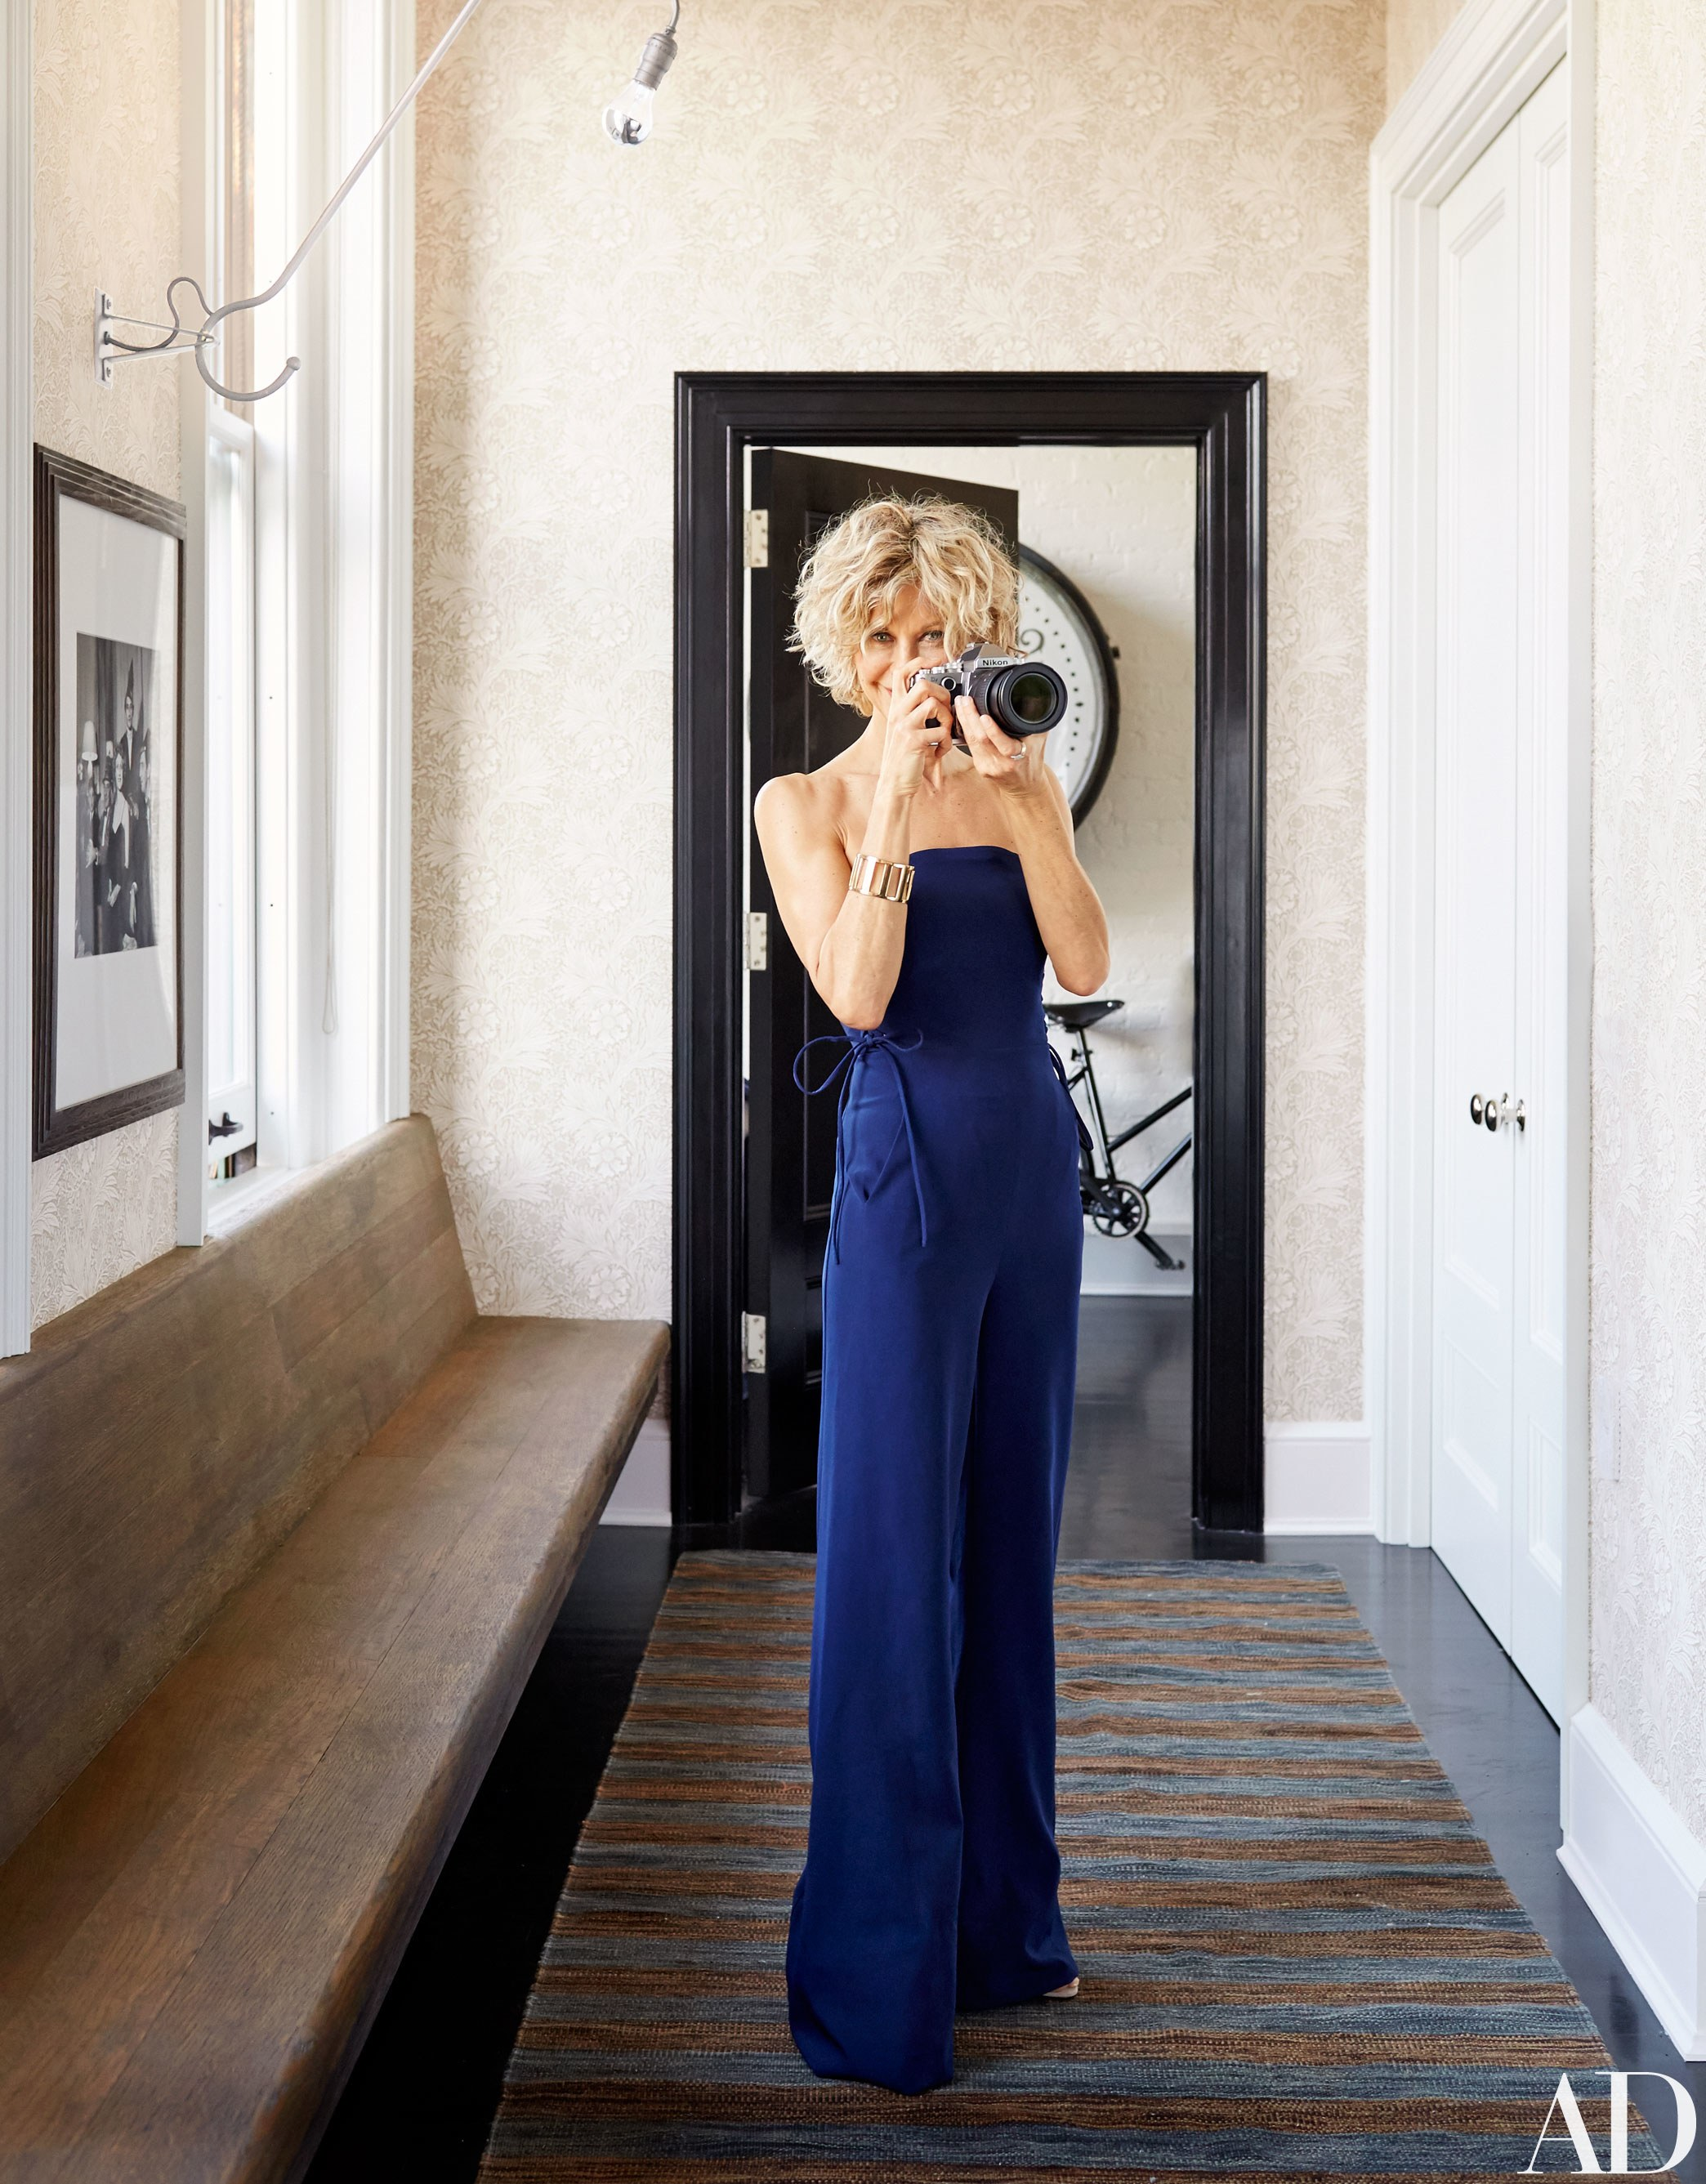 In the front hall of Meg Ryan's New York loft, you can see she selected a warm and cozy blue and brown striped flat weave rug.